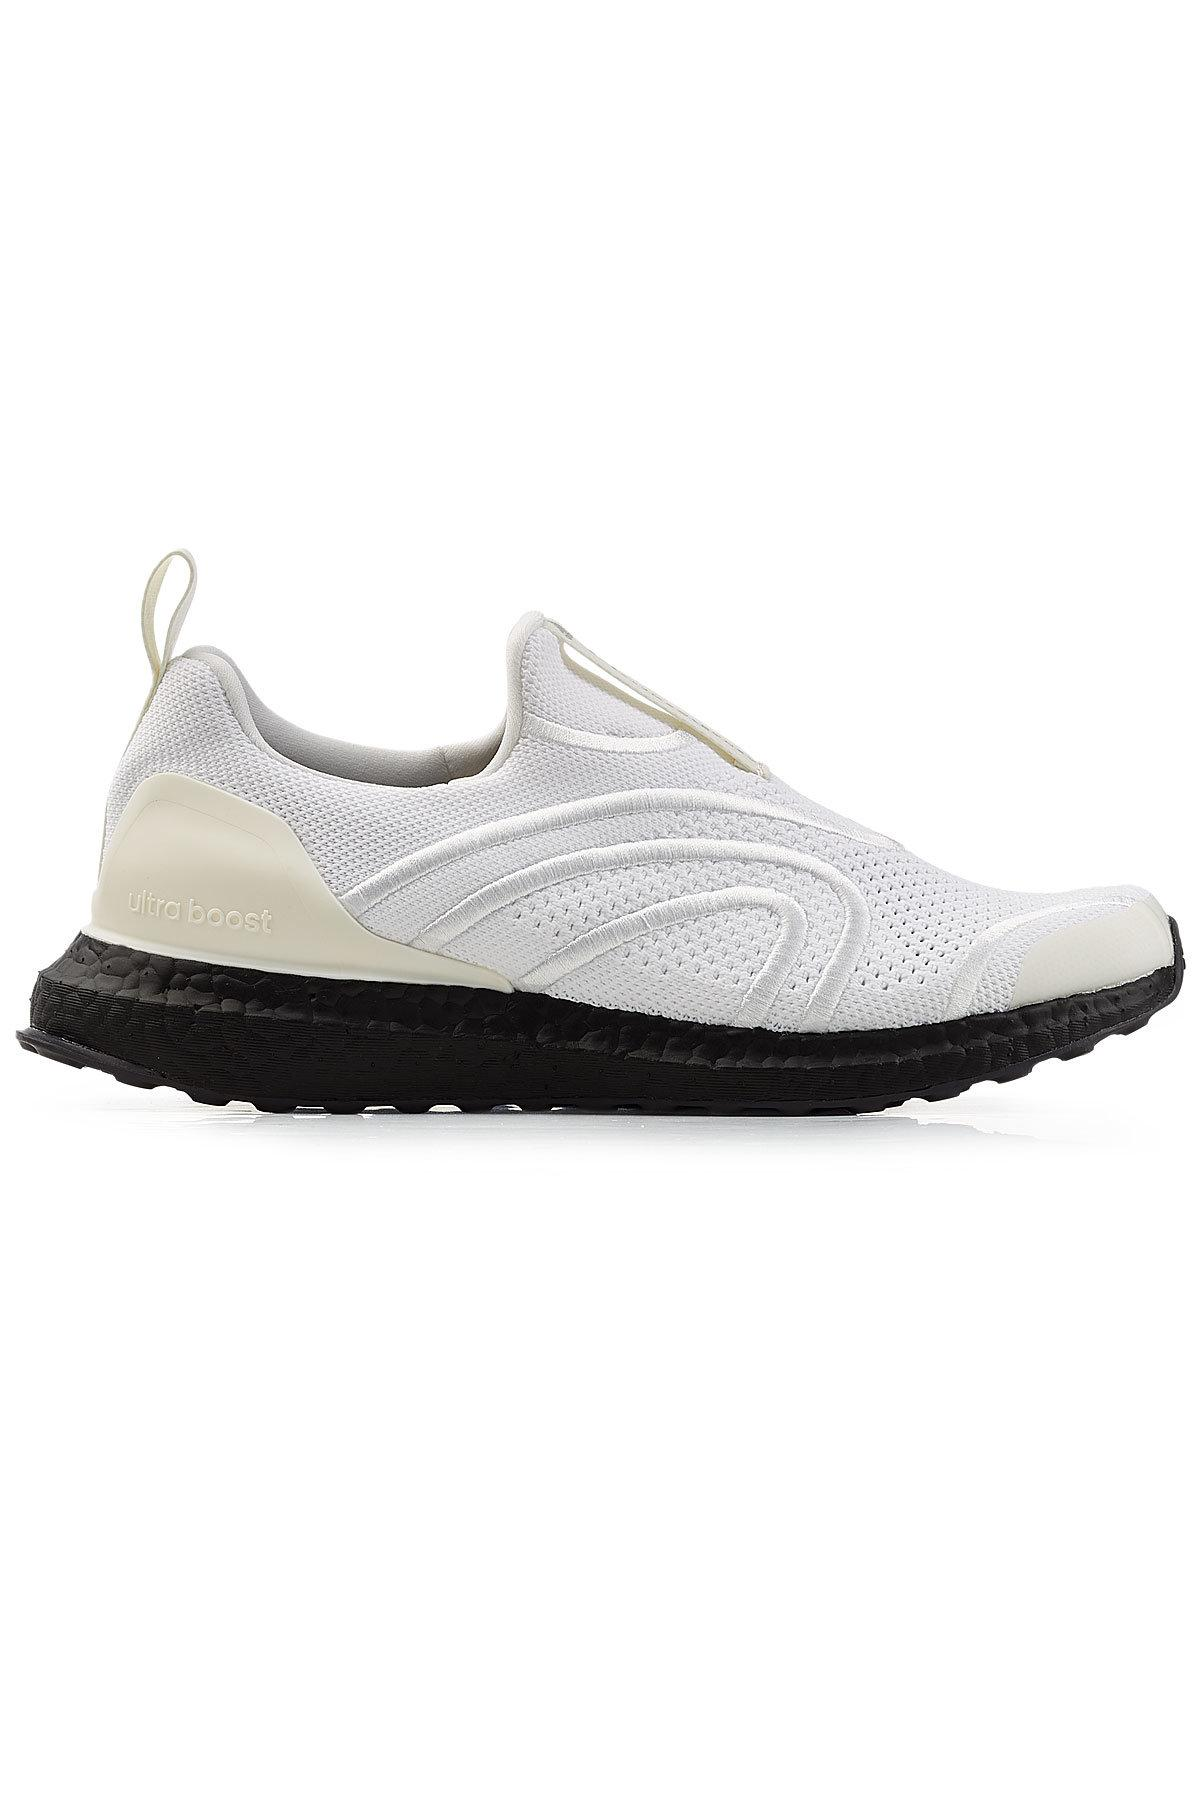 270ed277d Adidas By Stella McCartney - White Ultra Boost Uncaged Sneakers - Lyst.  View fullscreen